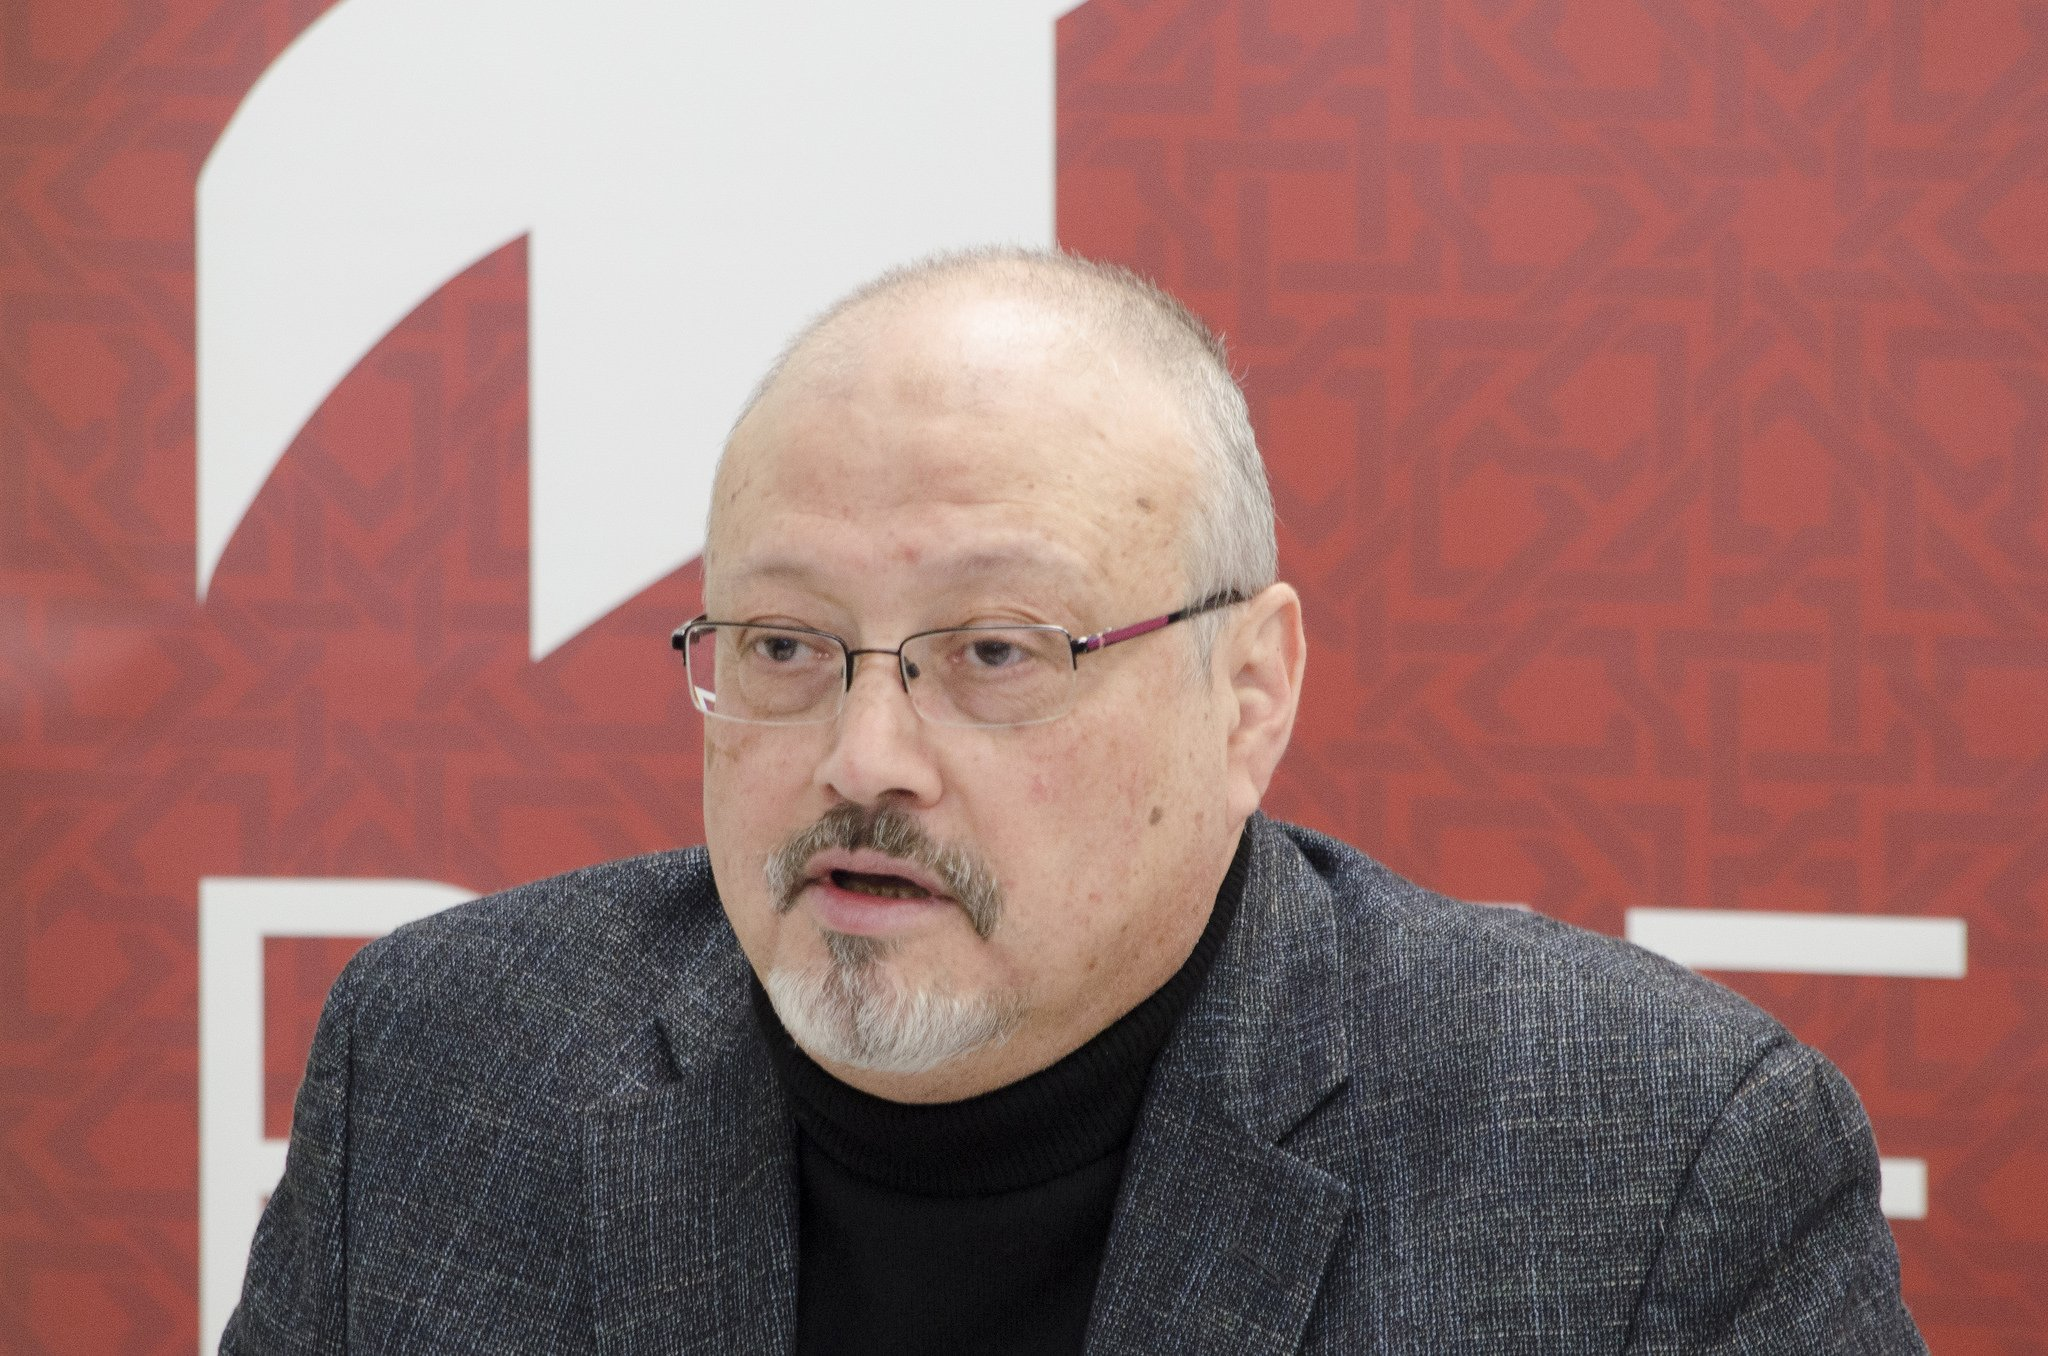 Jamal Khashoggi April Brady/Project on Middle East Democracy